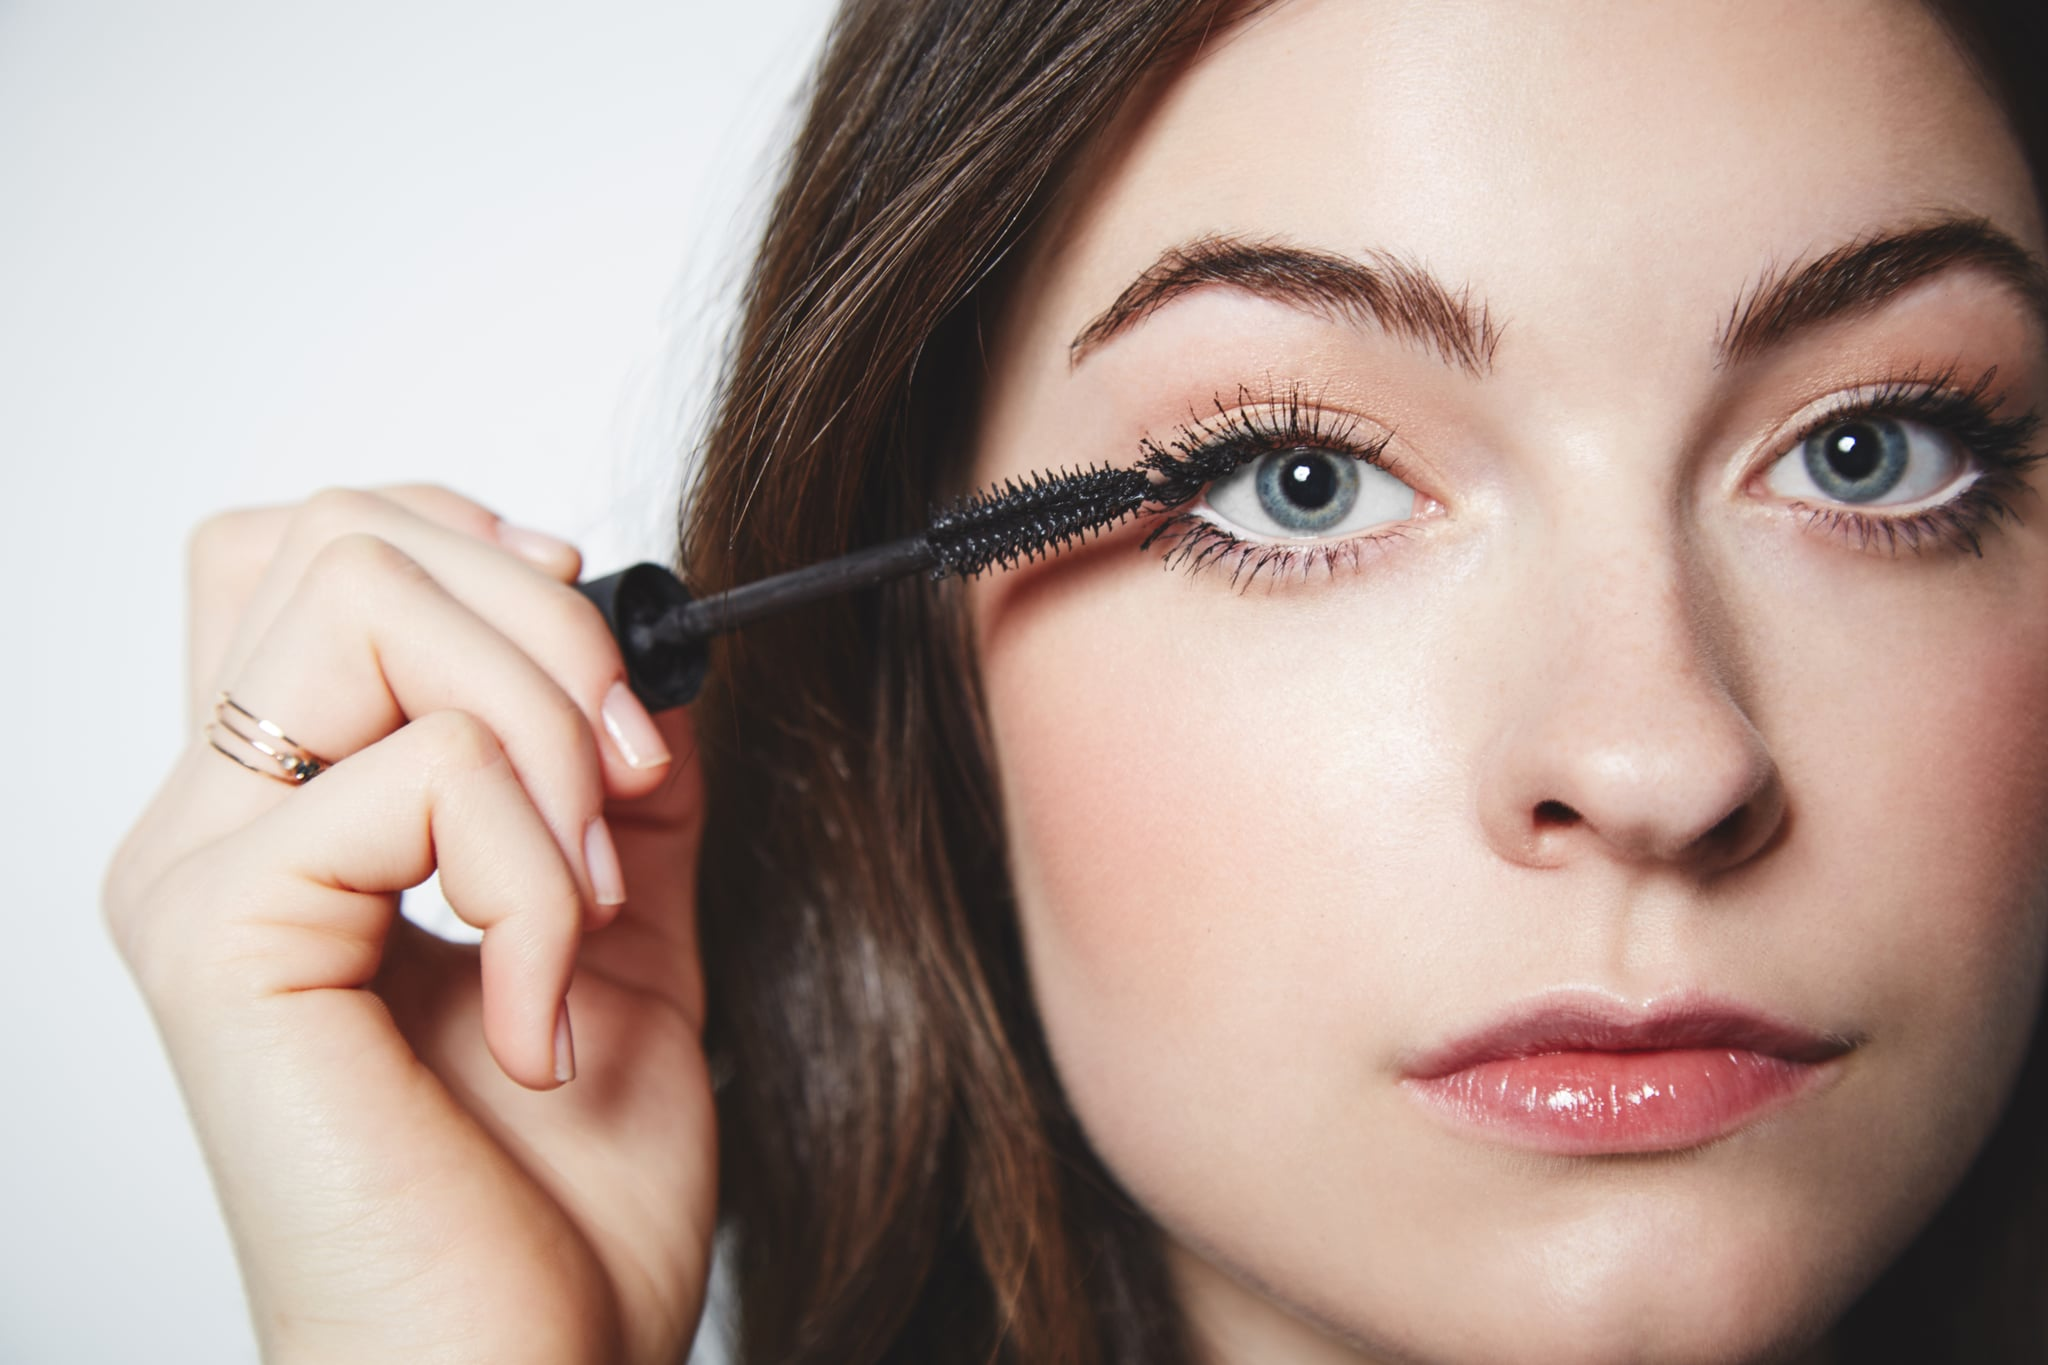 The Reason Your Mascara Is Smudging May Not Have Anything to Do With Your Mascara